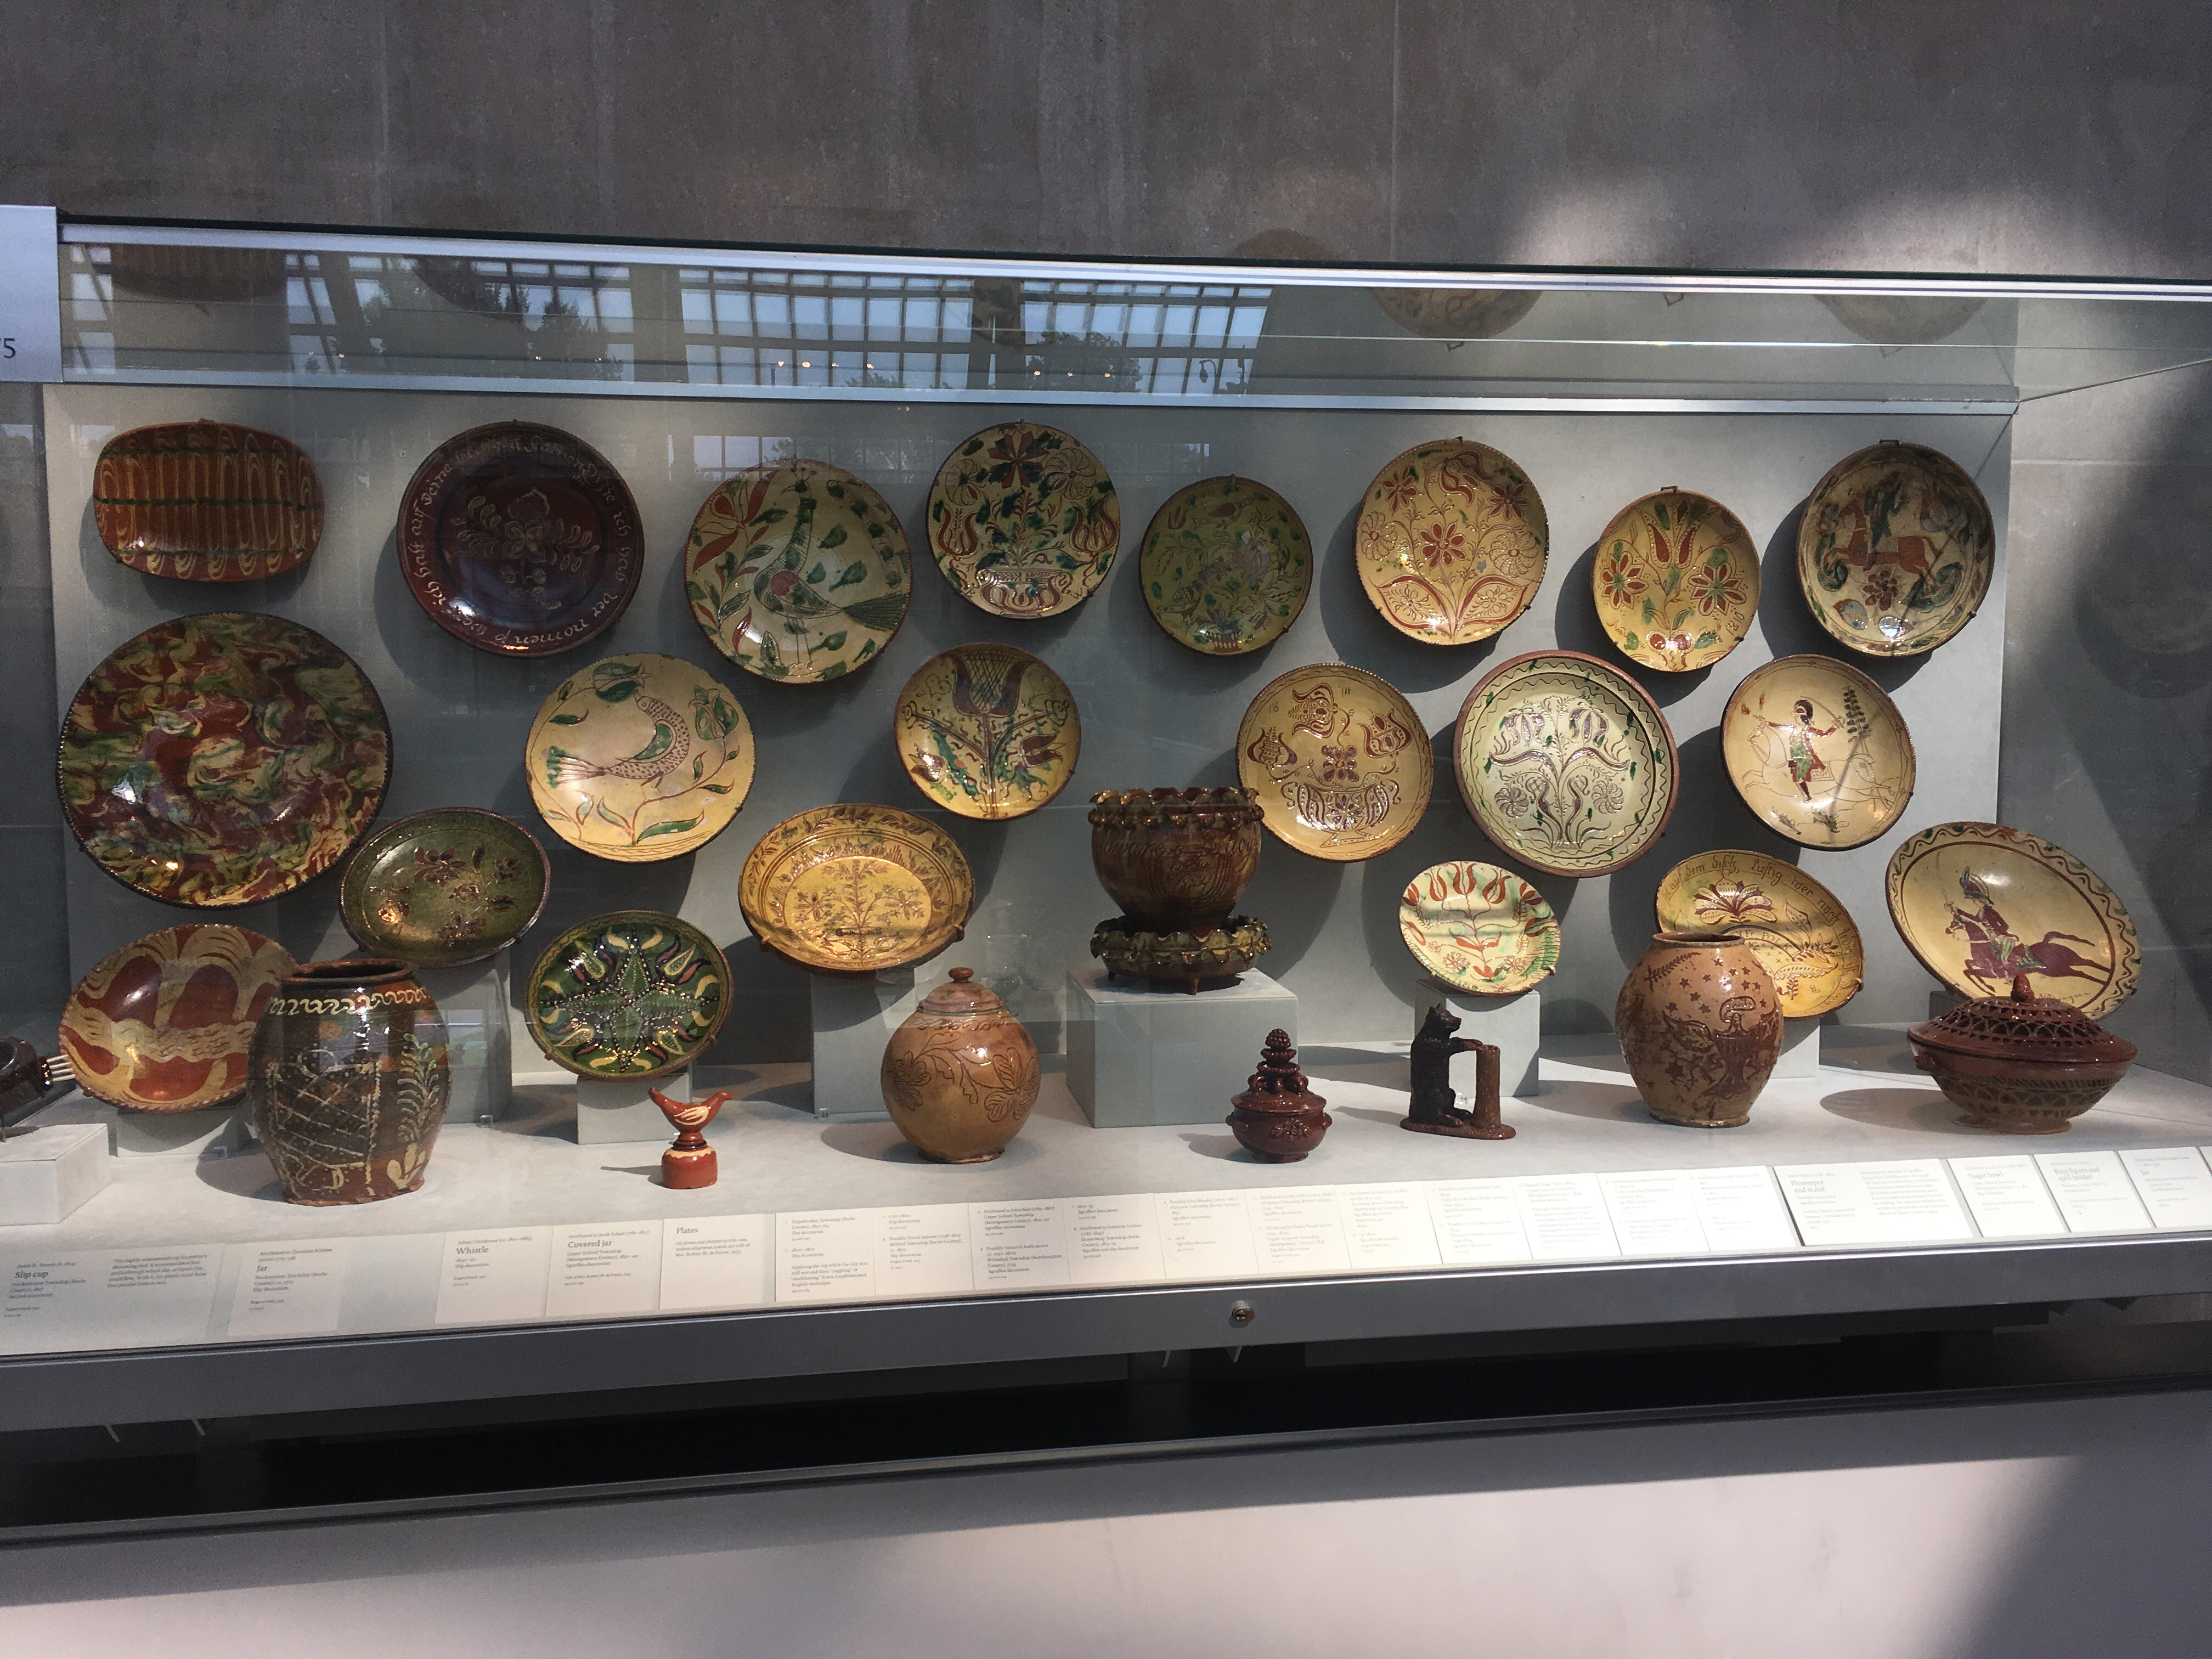 A large case with about 20 pieces of Pennsylvania redware dishware